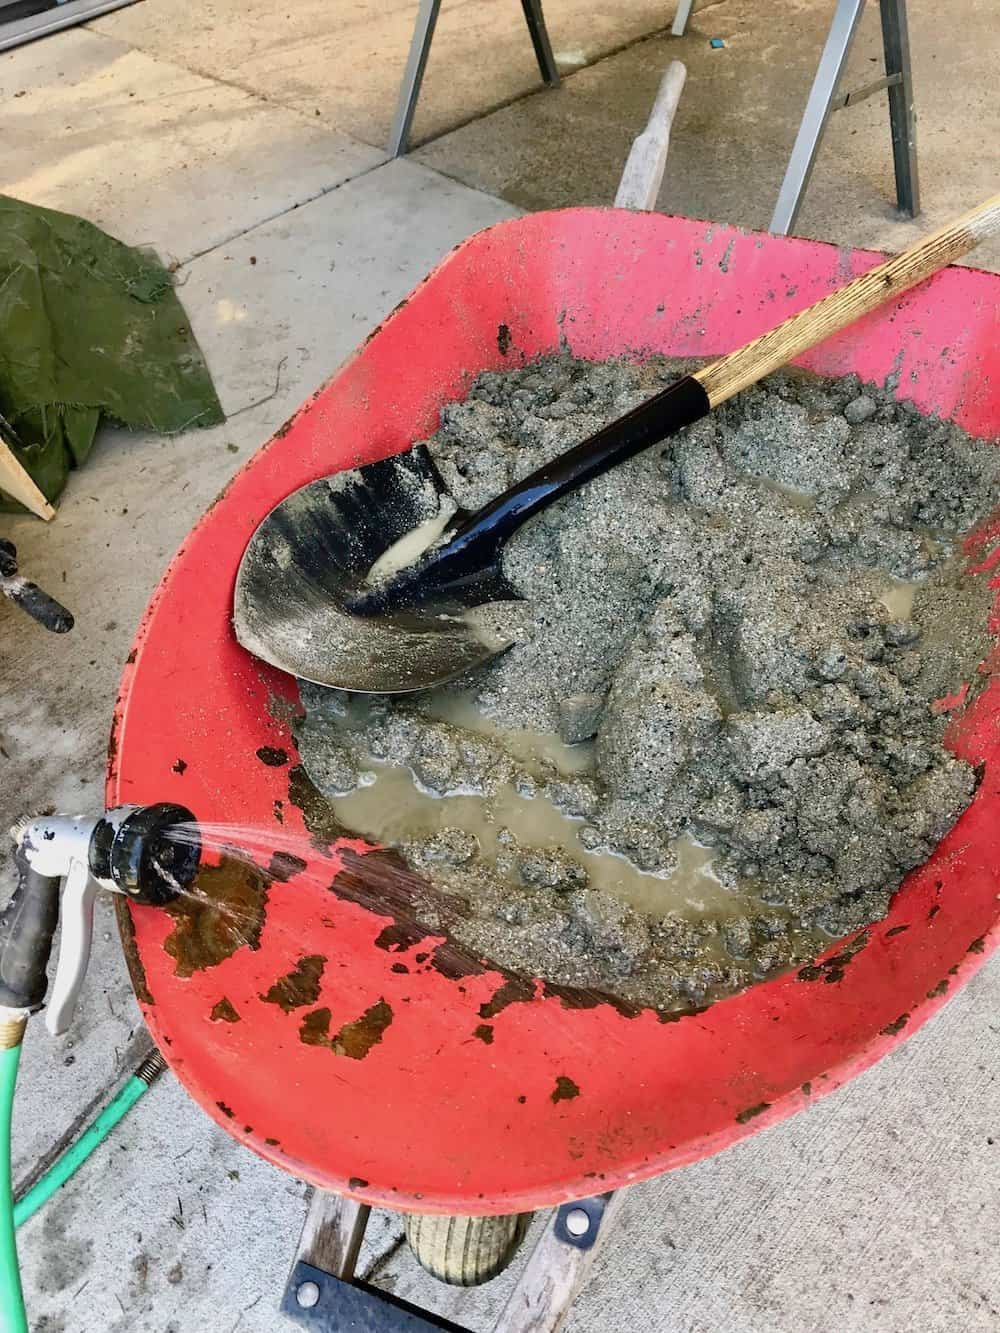 Mixing concrete to make DIY concrete furniture